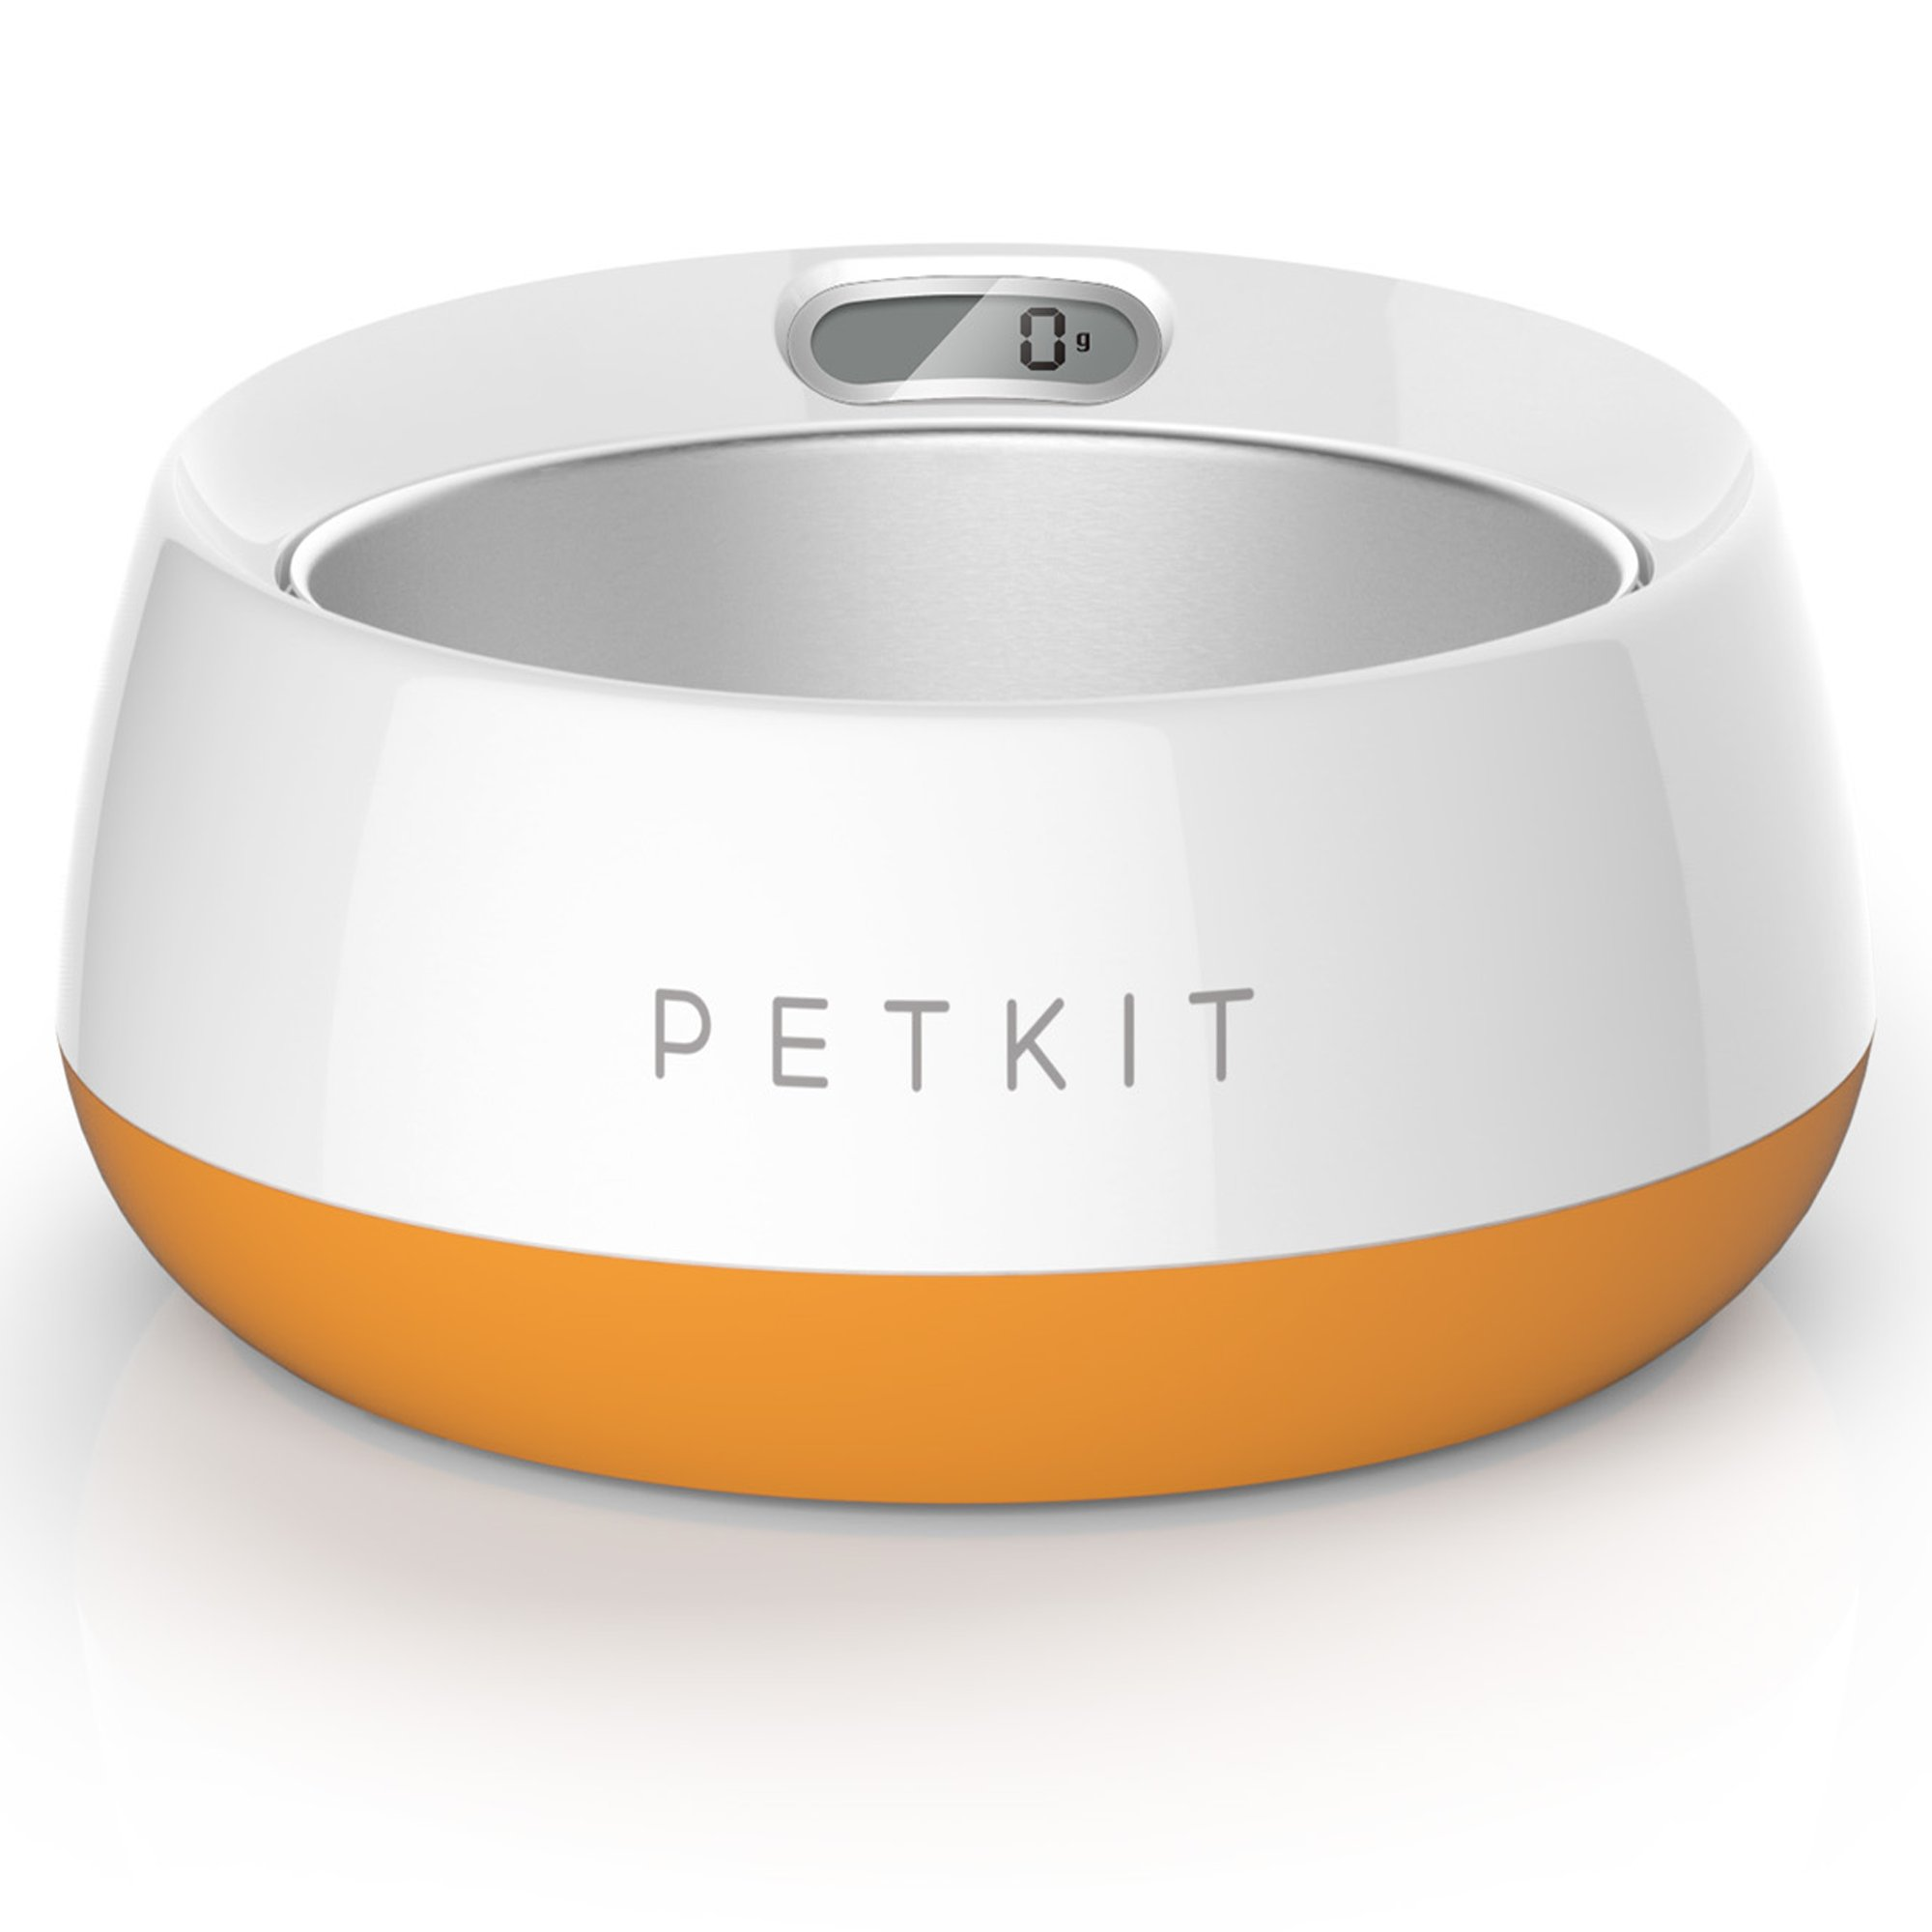 PetKit FRESH Metal Smart Digital Feeding Pet Bowl - Orange